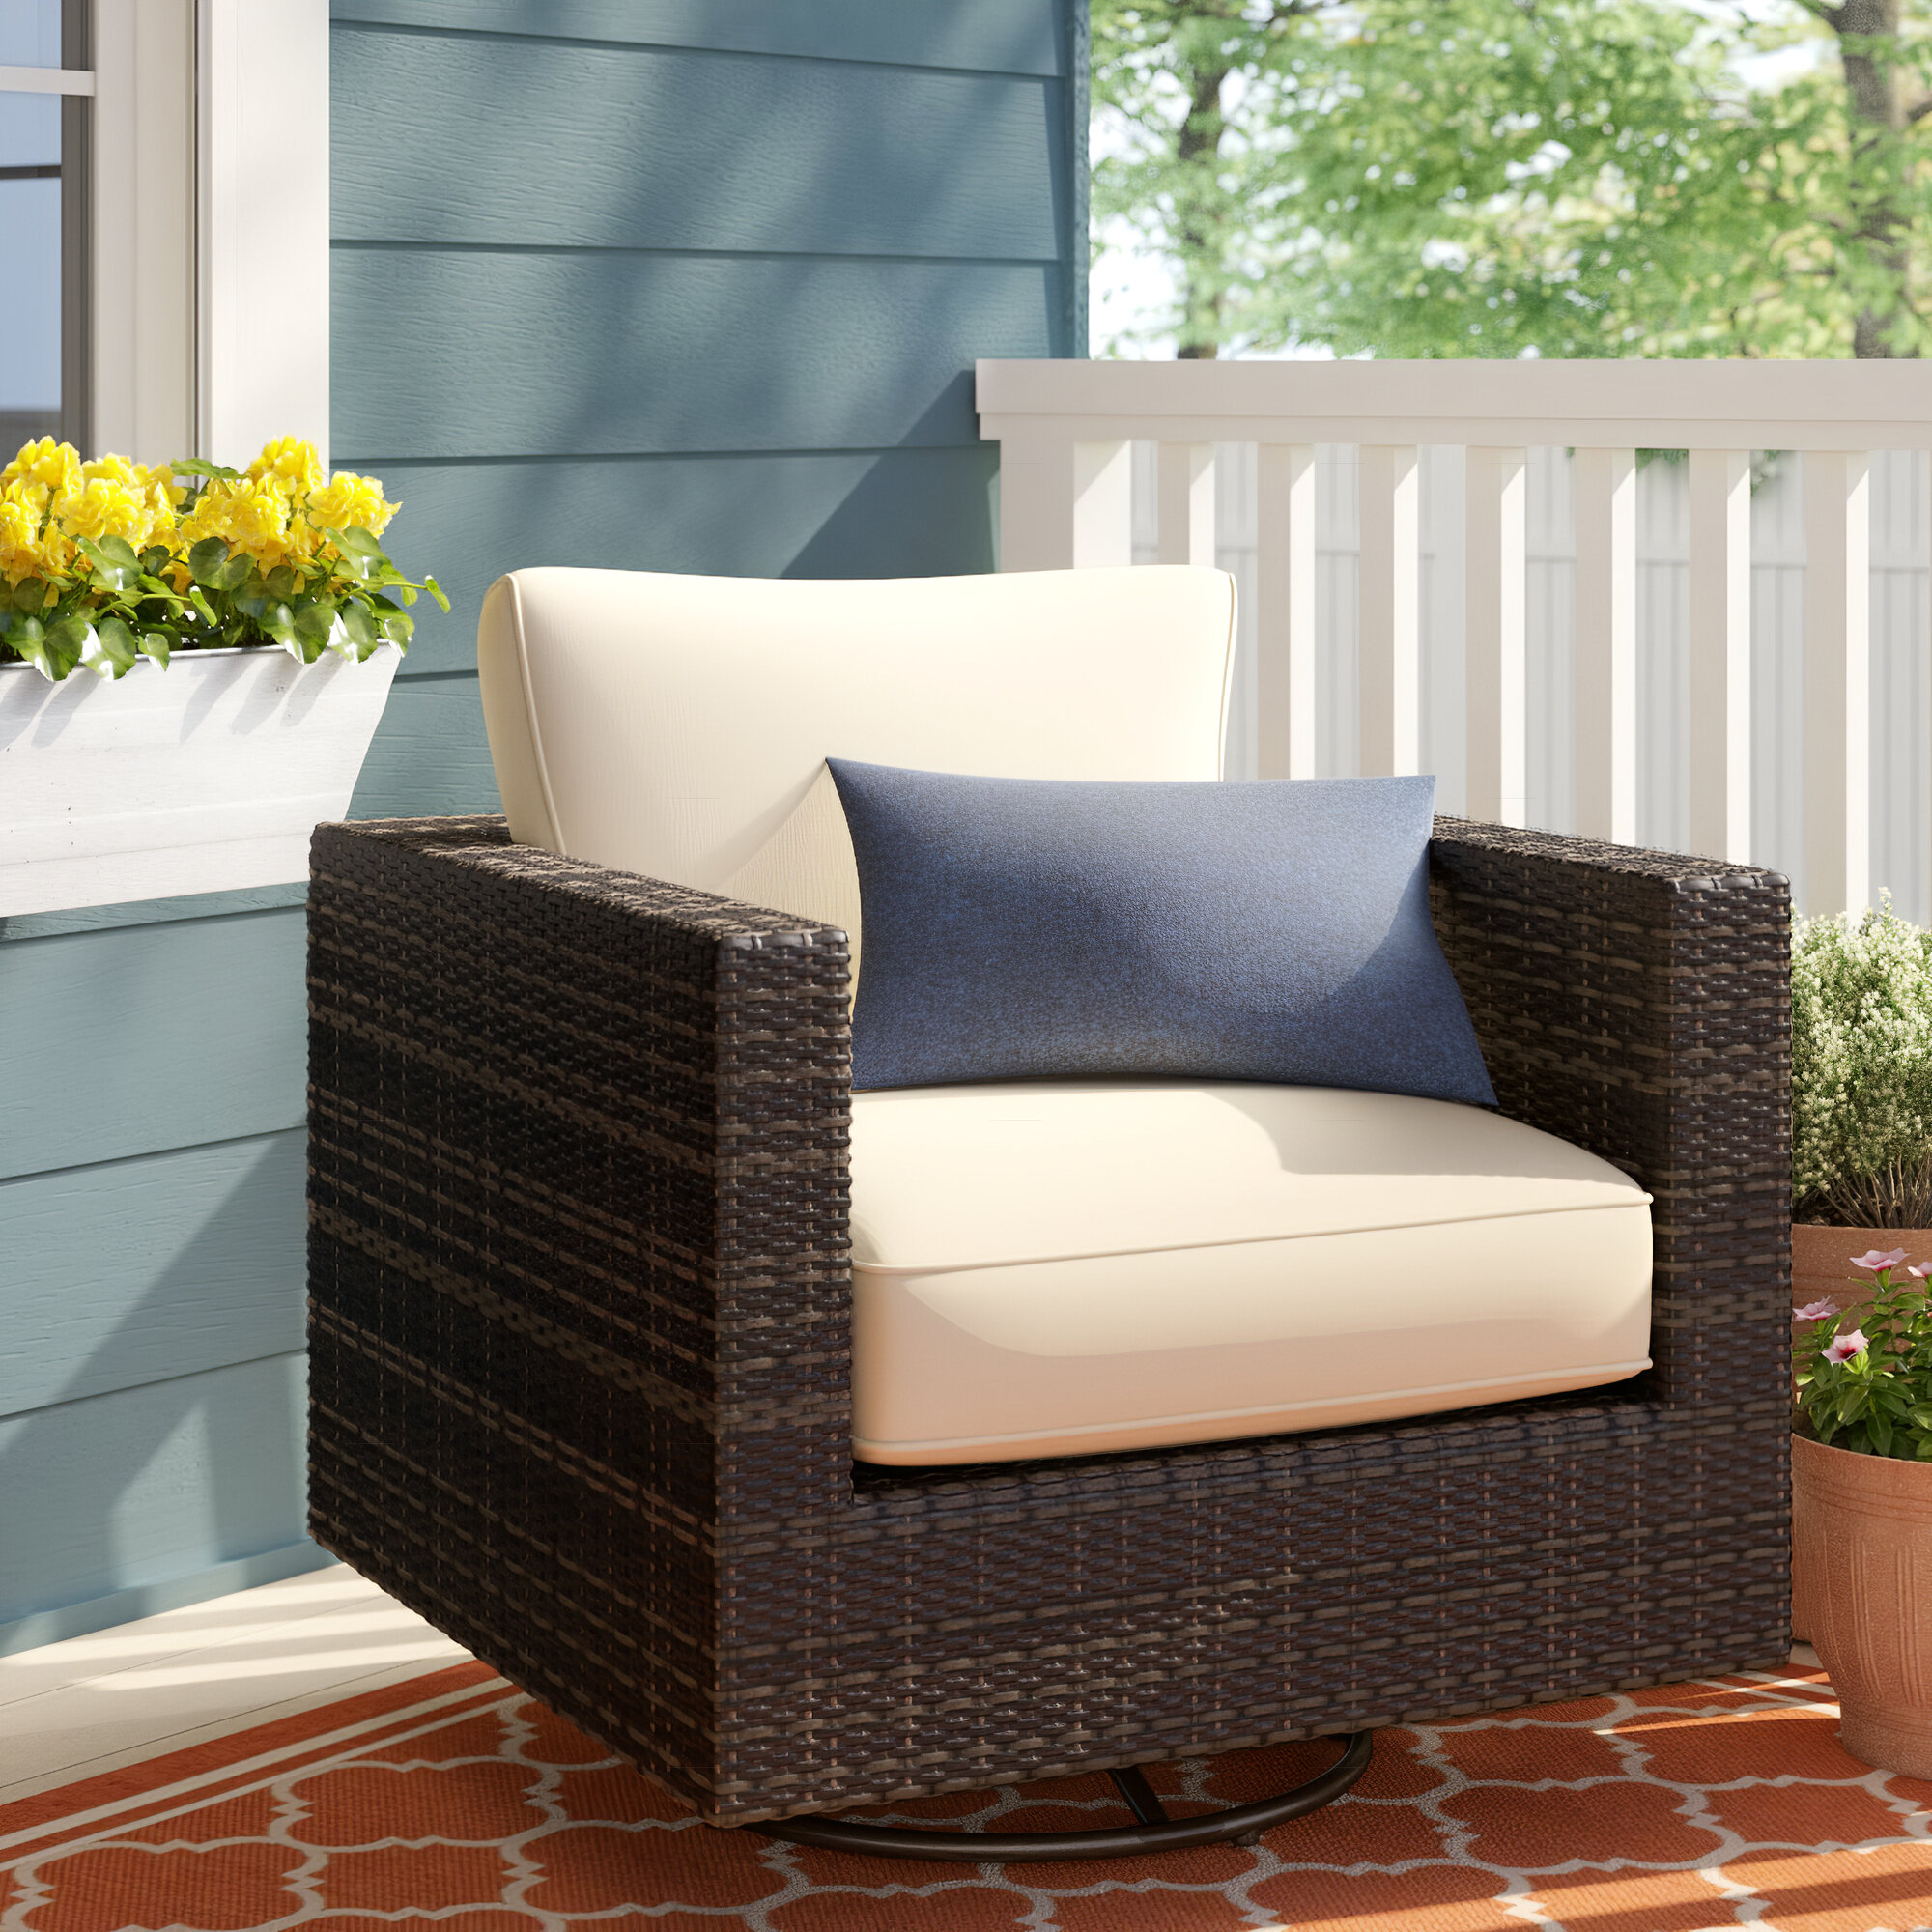 Magnificent Sol 72 Outdoor Barwick Swivel Patio Chair With Cushions Bralicious Painted Fabric Chair Ideas Braliciousco